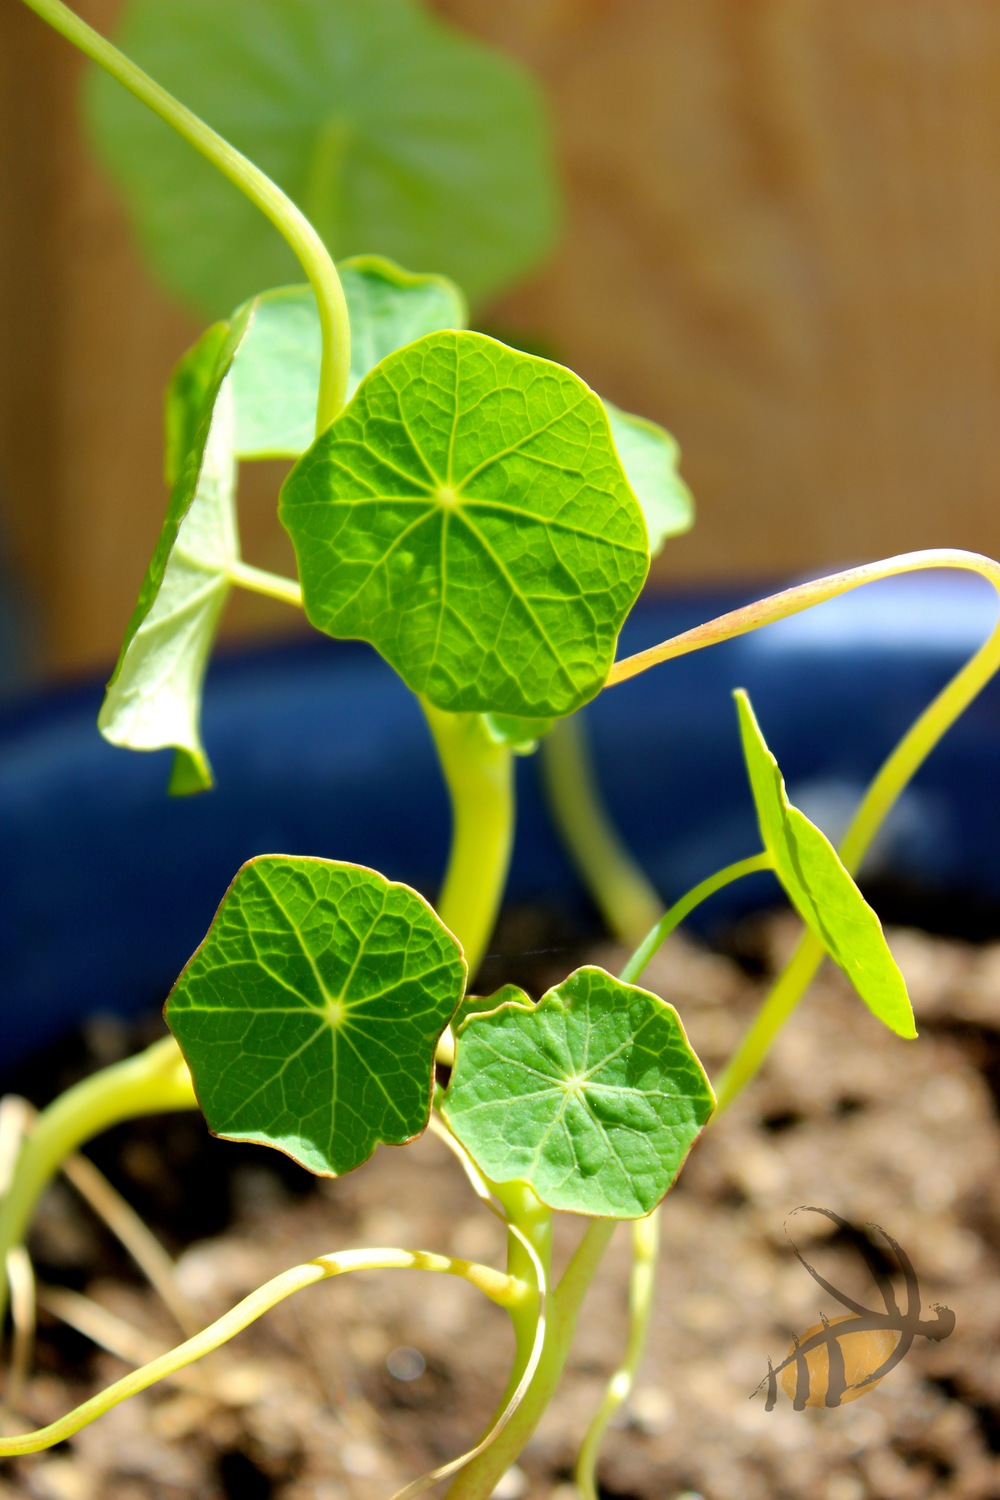 Nasturtiums are great for small spaces, edible, and repel a variety of pests.